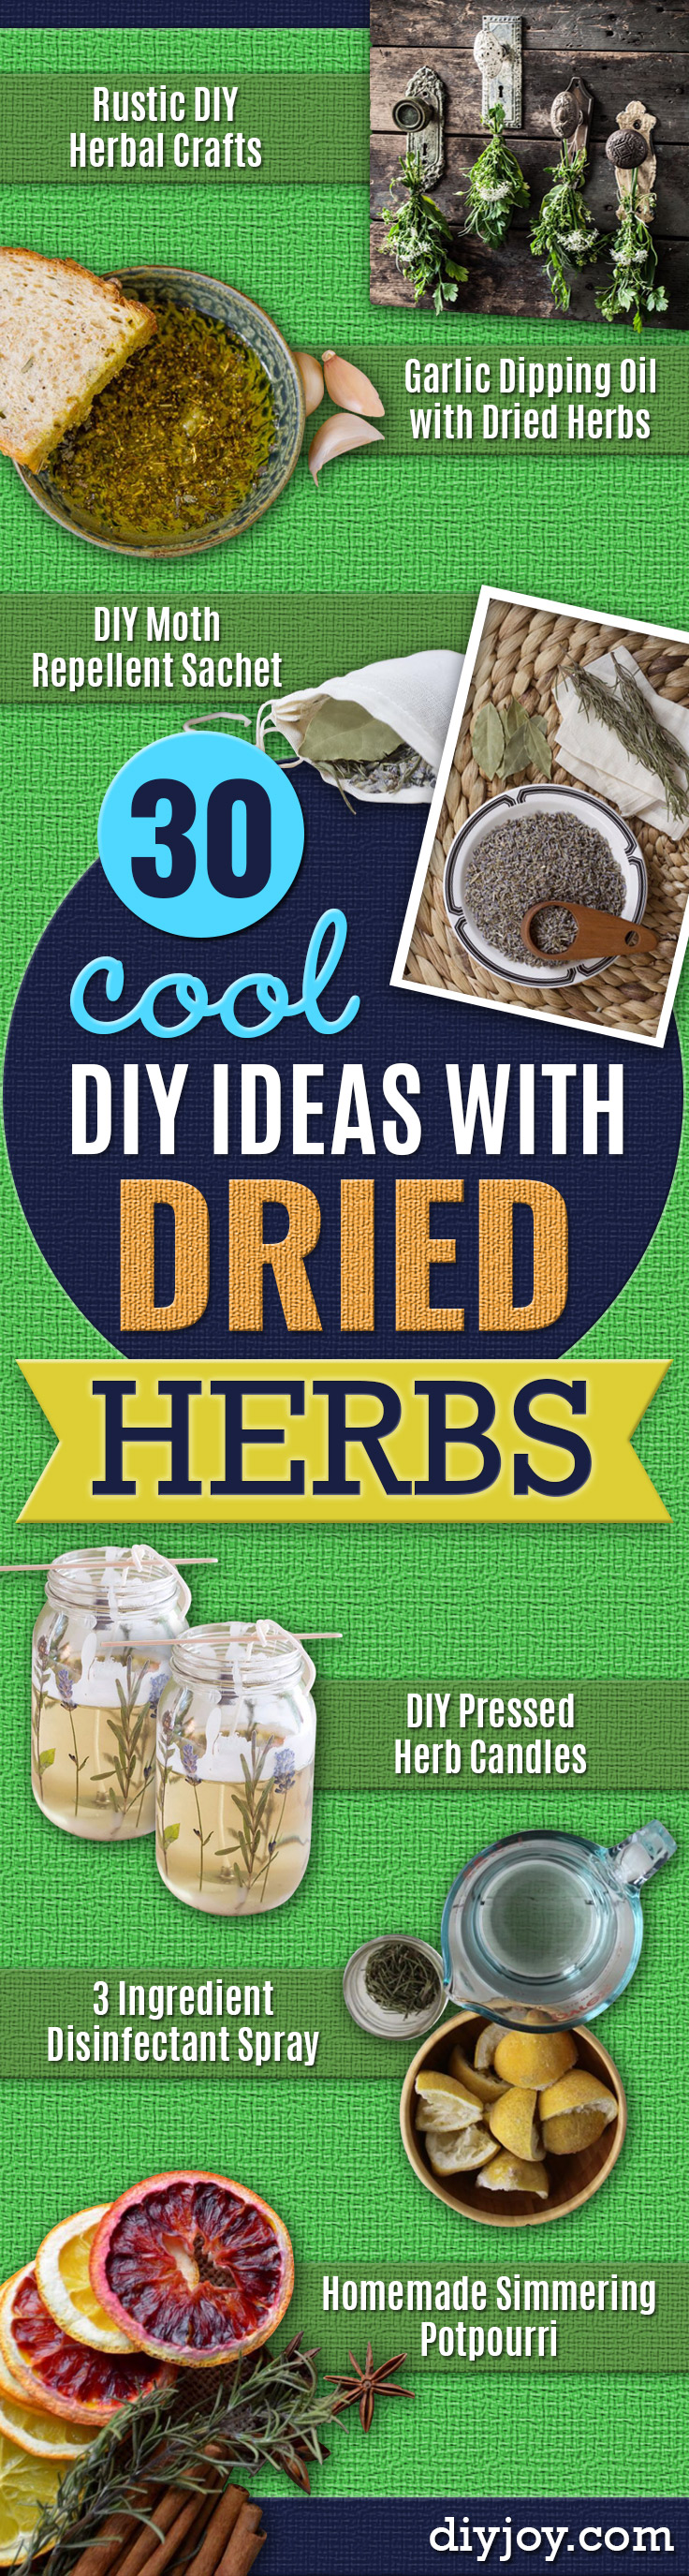 DIY Ideas with Dried Herbs - Creative Home Decor With Easy Step by Step Tutorials for Making Herb Crafts, Projects and Recipes - Cool DIY Gift Ideas and Cheap Homemade Gifts - DIY Projects and Crafts by DIY JOY #diy #herbs #gifts